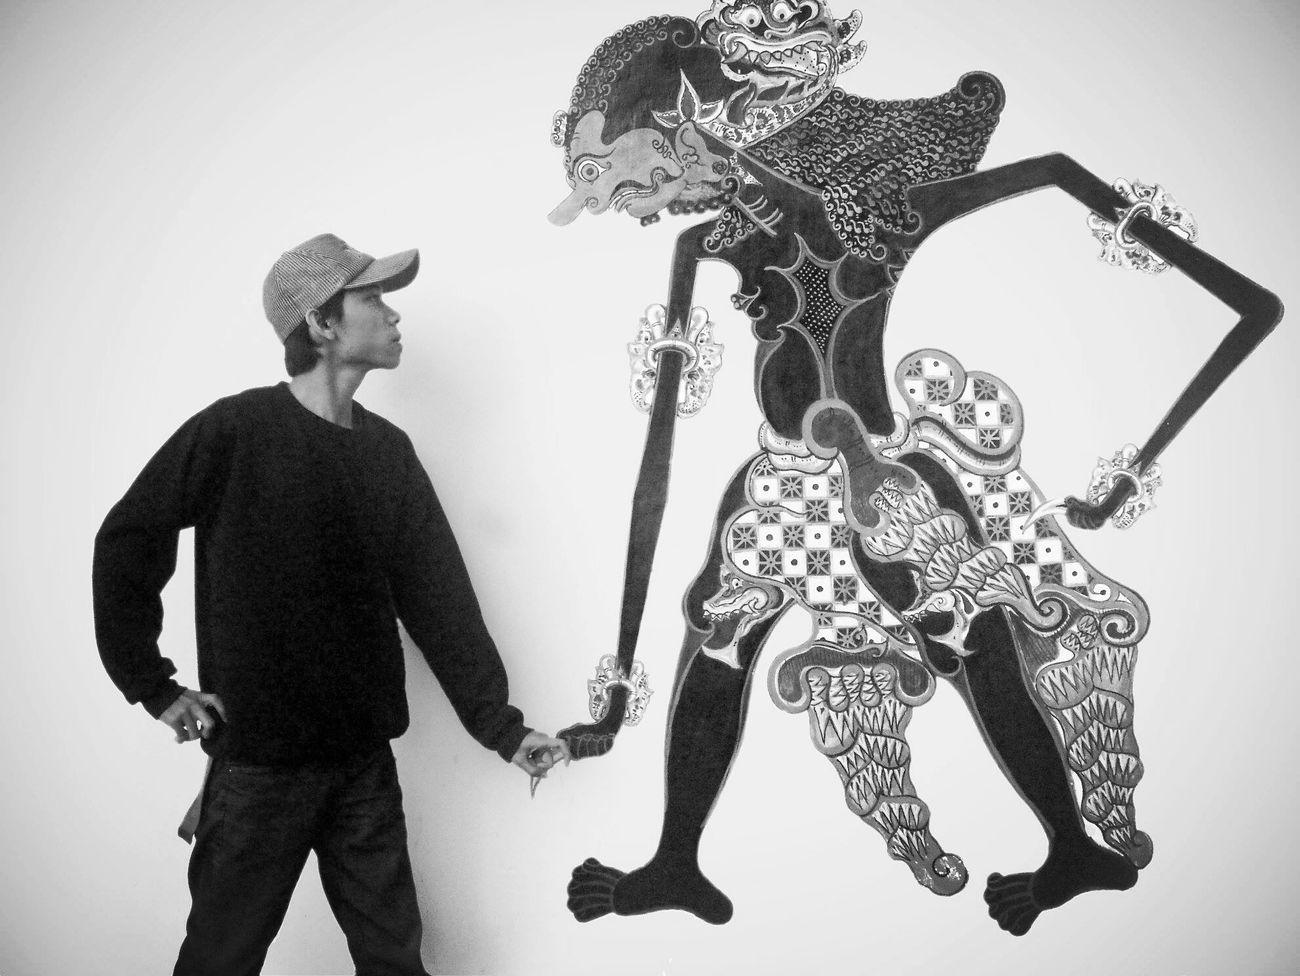 Versus Wayang Streetart Blackwhite Asian Culture Adapted To The City